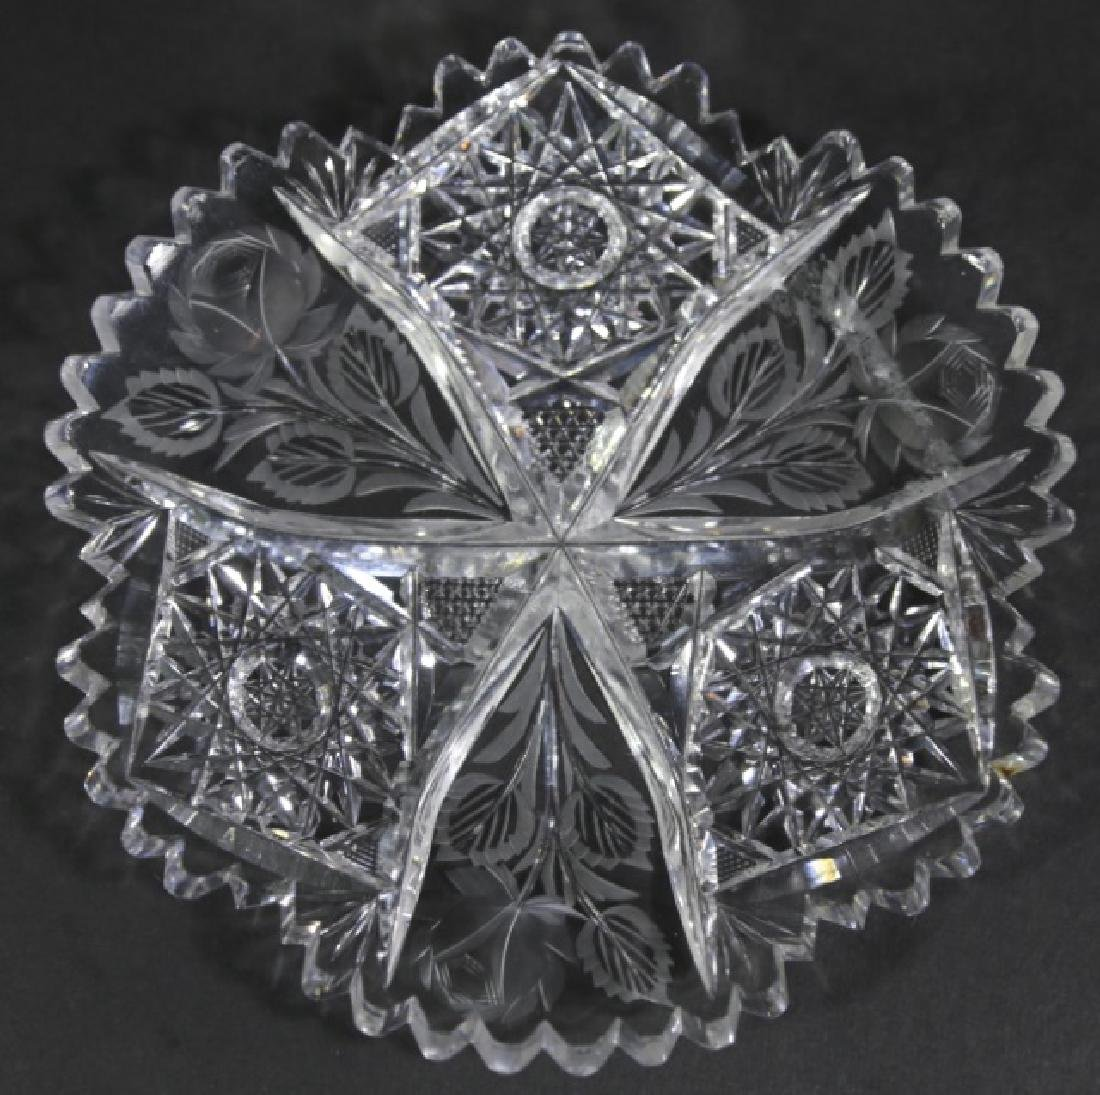 UNGER BROTHERS  FINE CUT GLASS BOWLS - 5